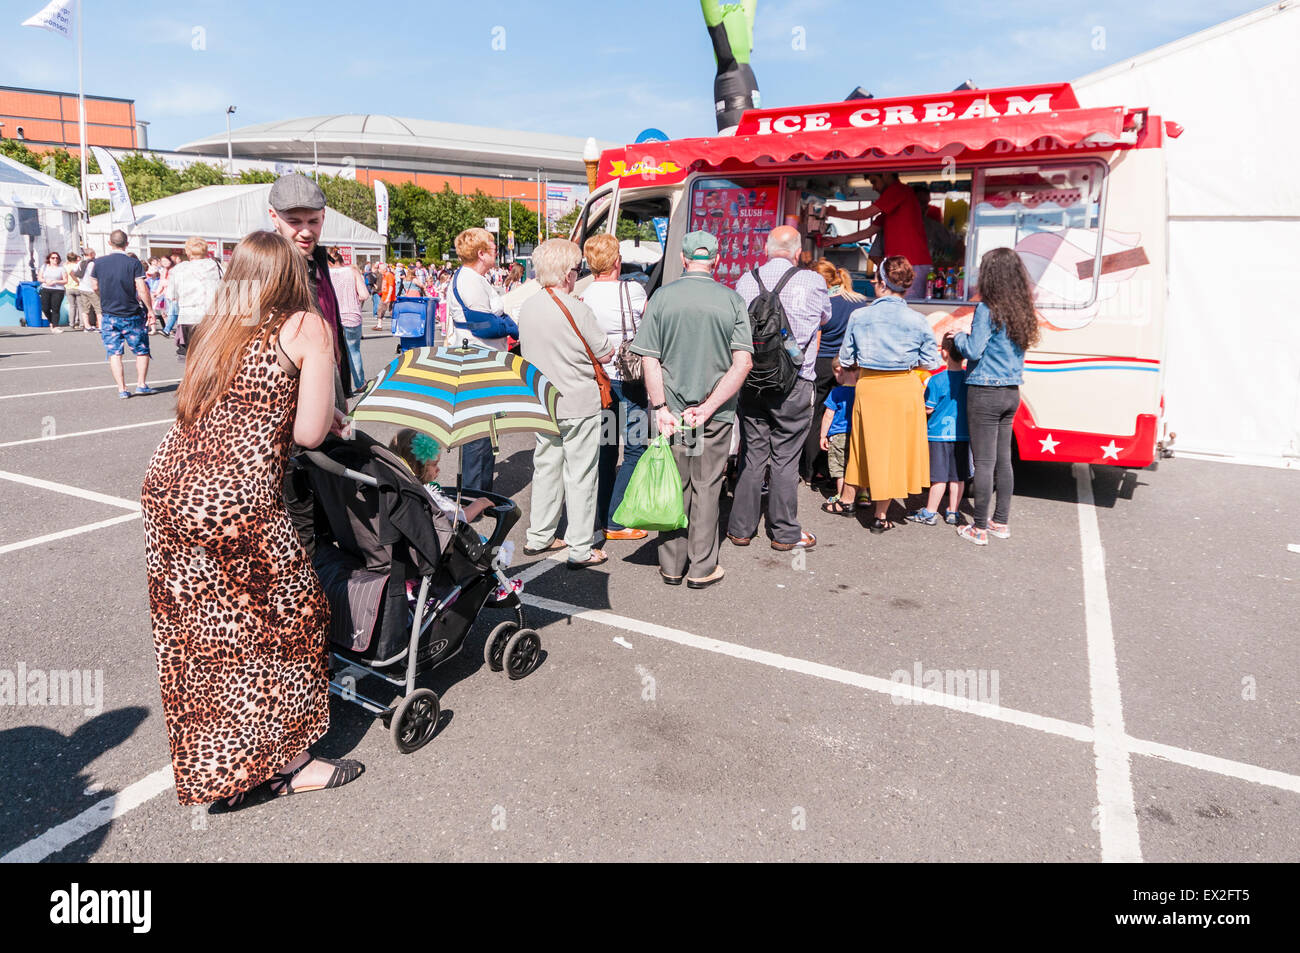 Customers queue up at an ice-cream van on a sunny day - Stock Image